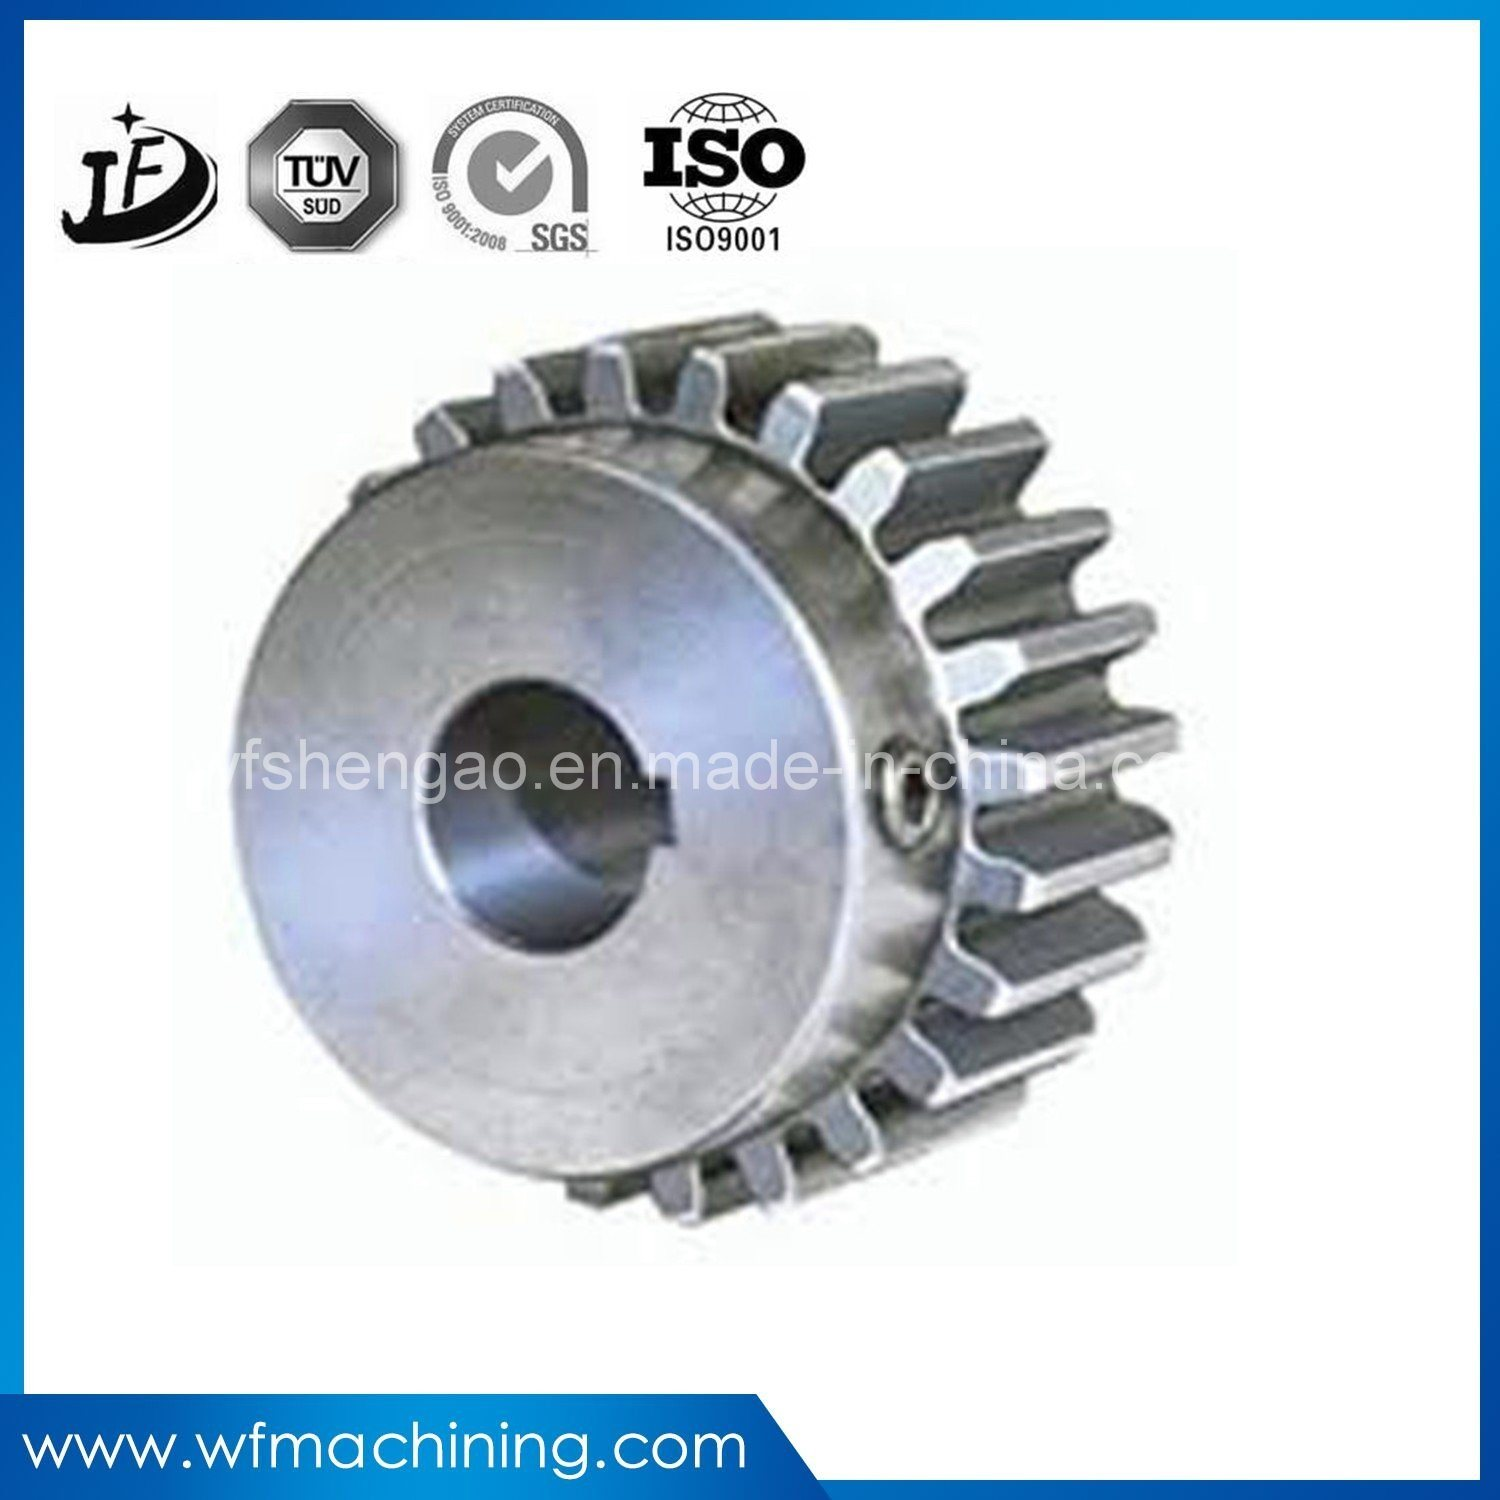 Steel/Brass Machining Bevel/Sprocket/Planetary Gear for Transmission